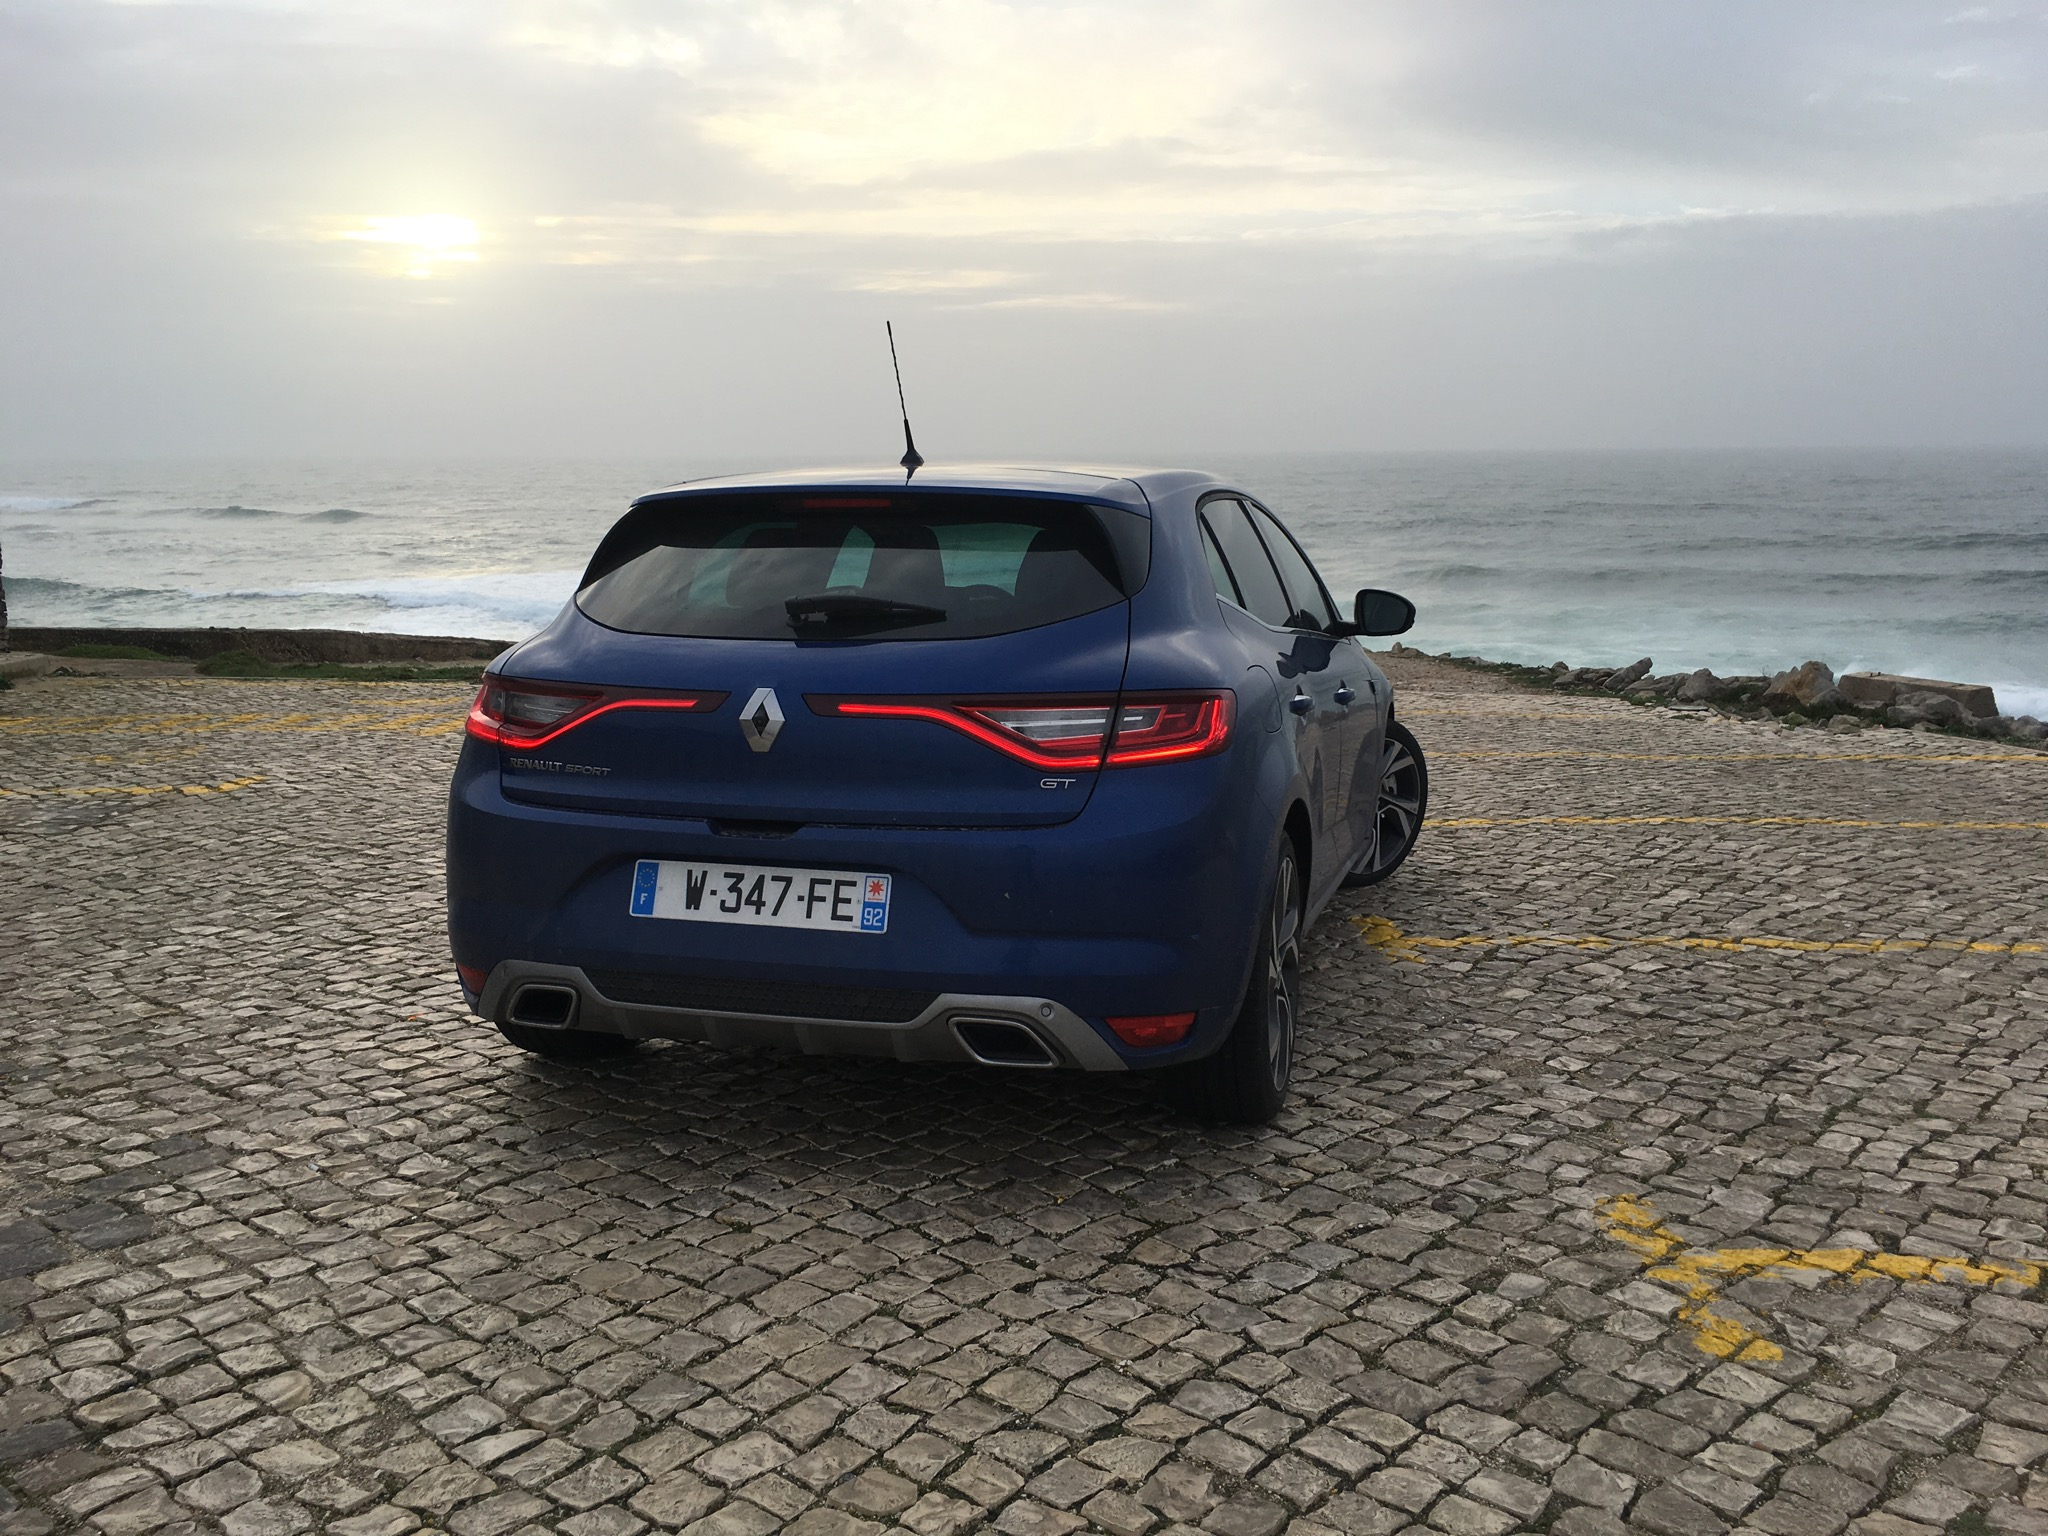 2016 Renault Megane Gt Rear Exterior (Photo 9 of 27)